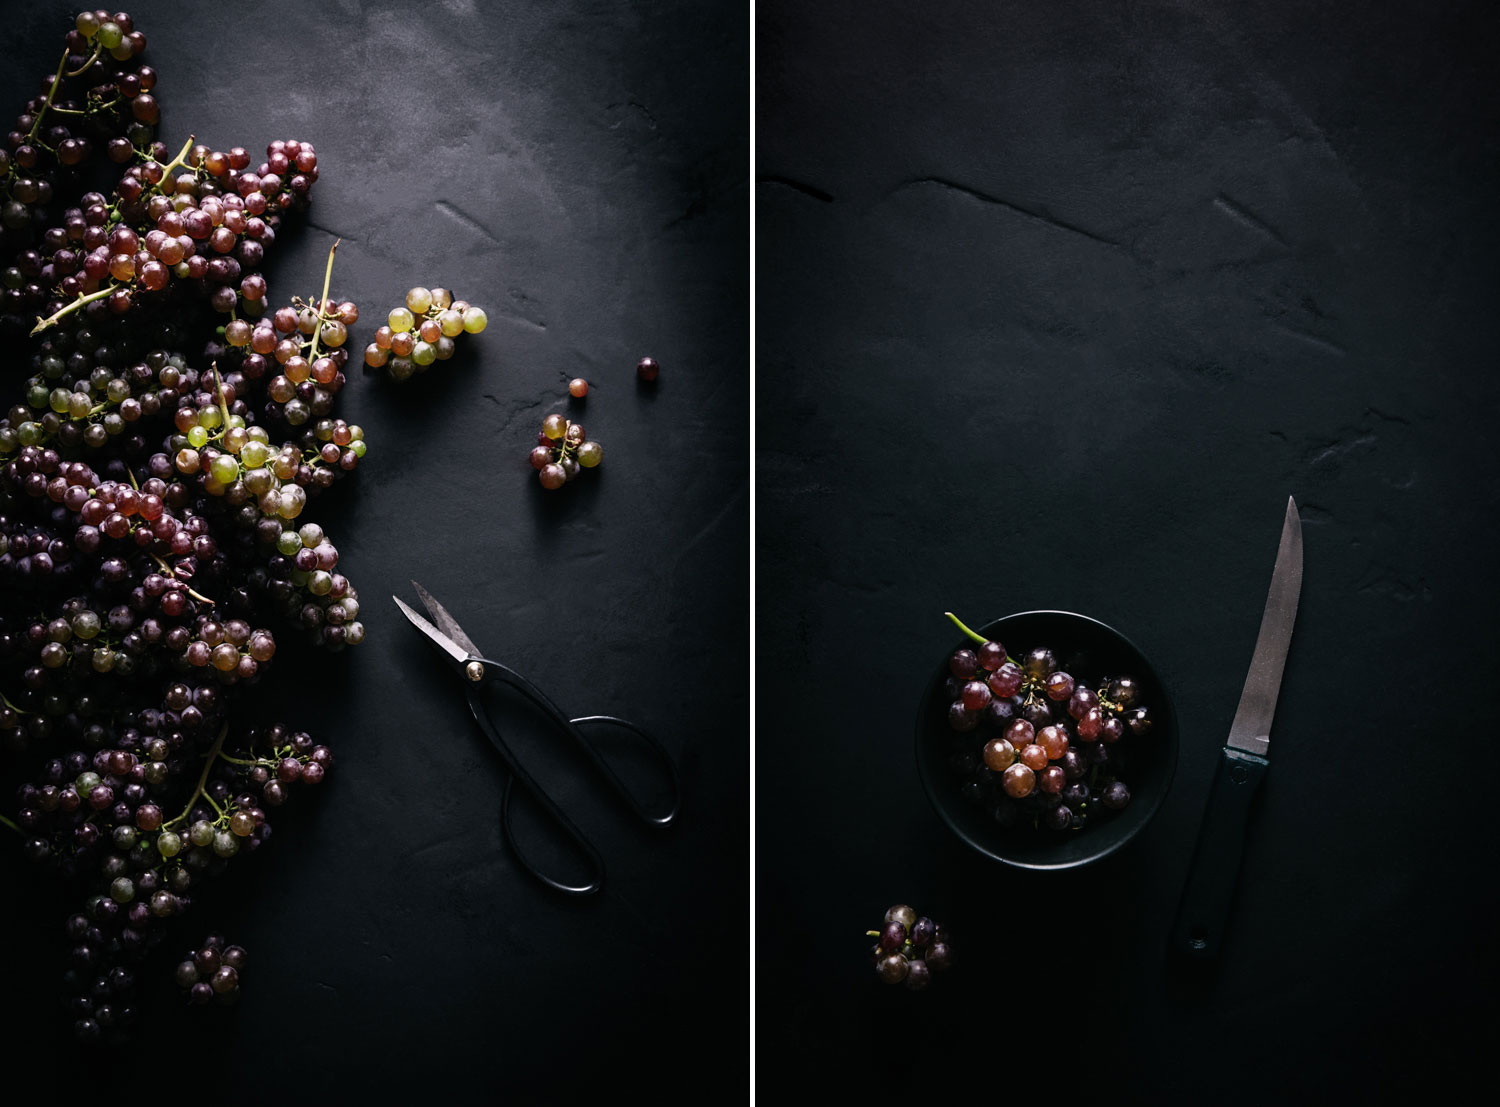 One Light Set Up Food Photography-Darina kopcok-DPS